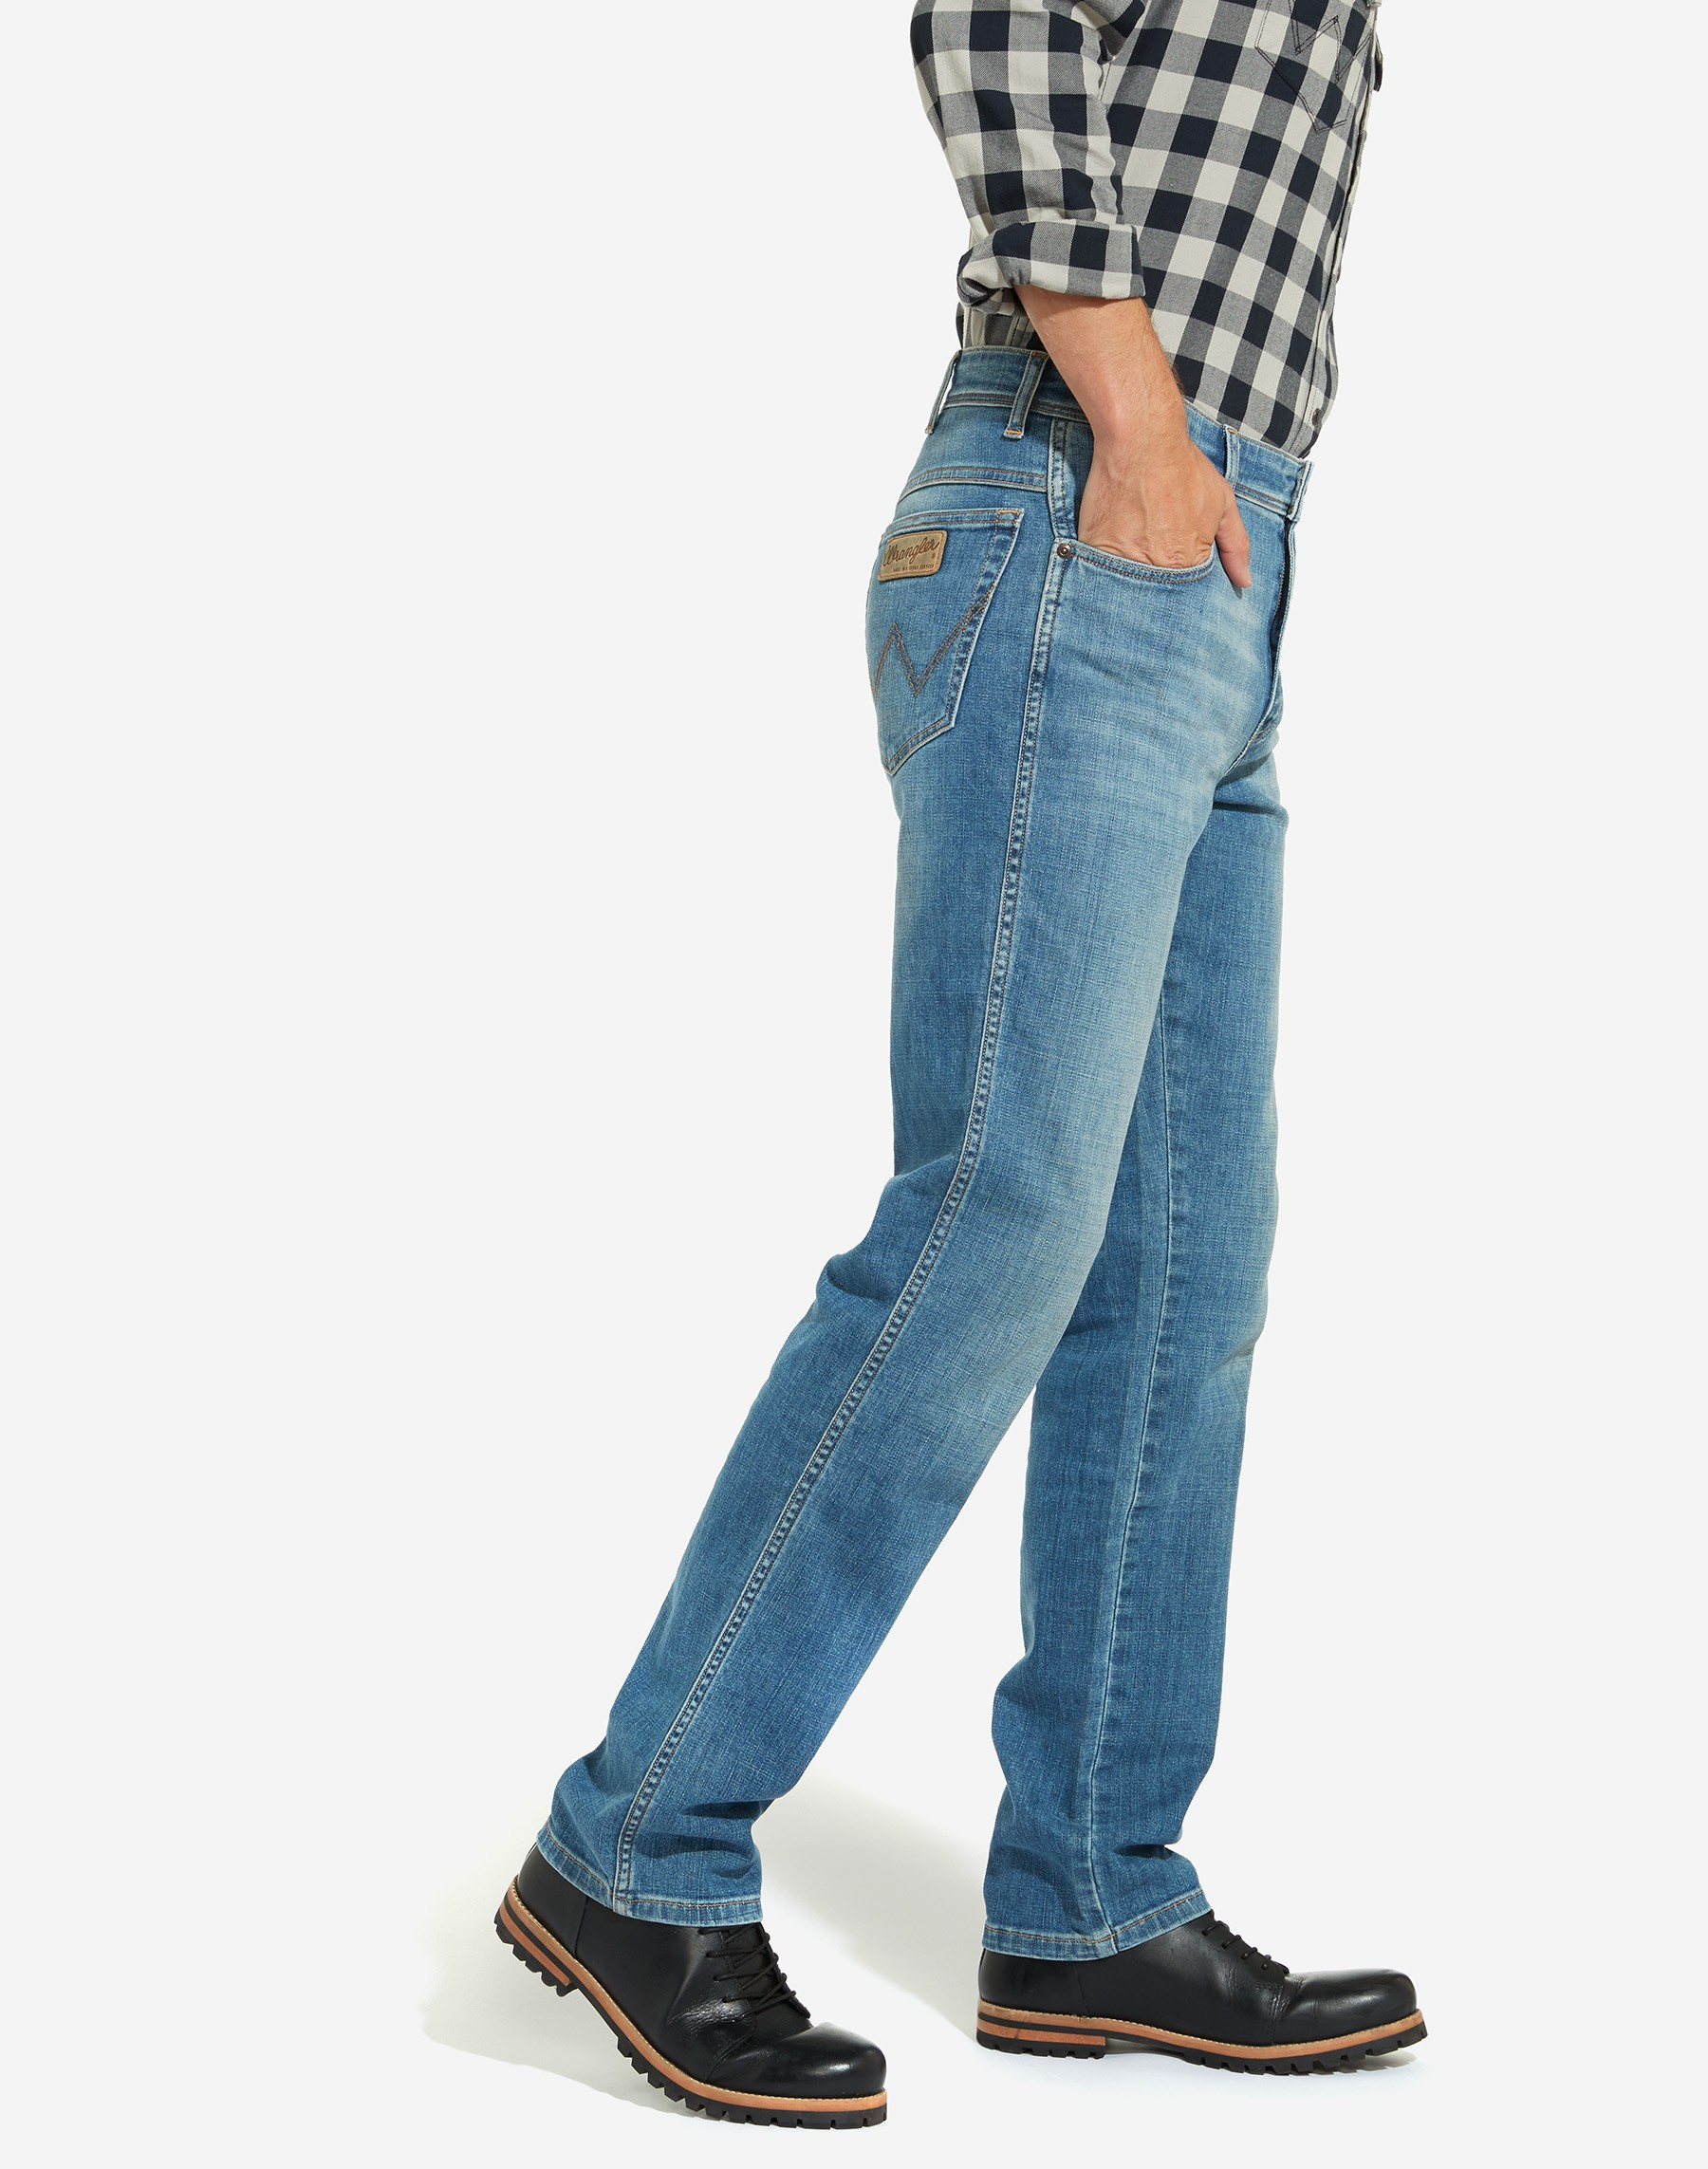 Mens-Wrangler-039-Texas-039-Jeans-Denim-Stretch-Original-Straight-Fit thumbnail 16